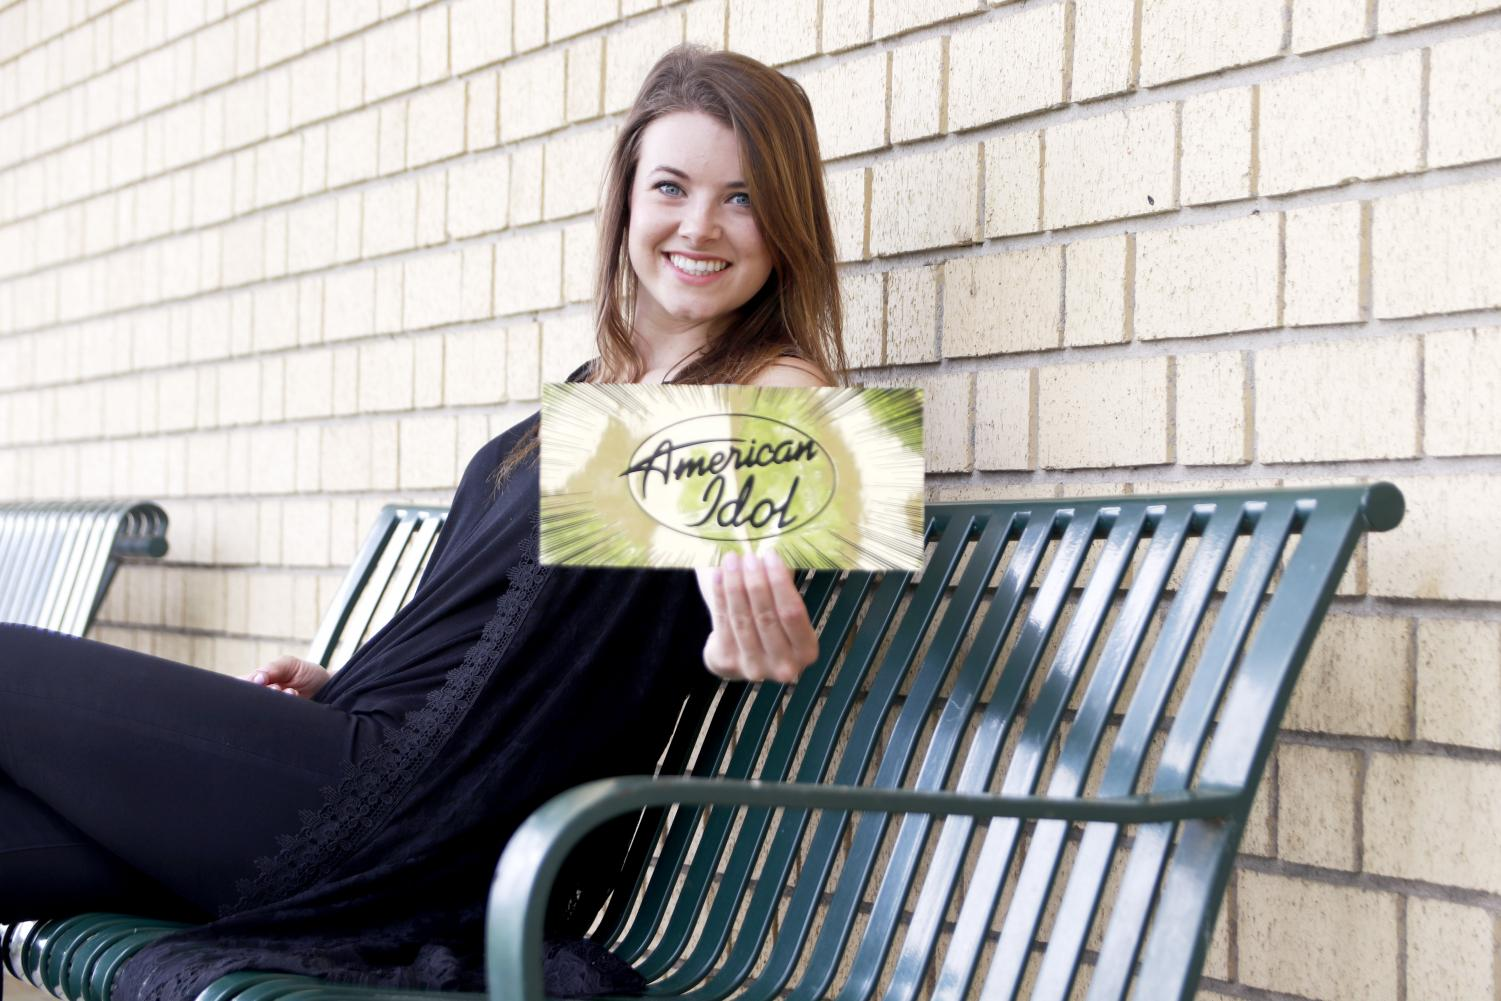 Ashton Gill, a sophomore nursing major, shows off her Golden Ticket from American Idol. Gill auditioned with the to-be title winner Laine Hardy and advanced to Hollywood with her singing skills.